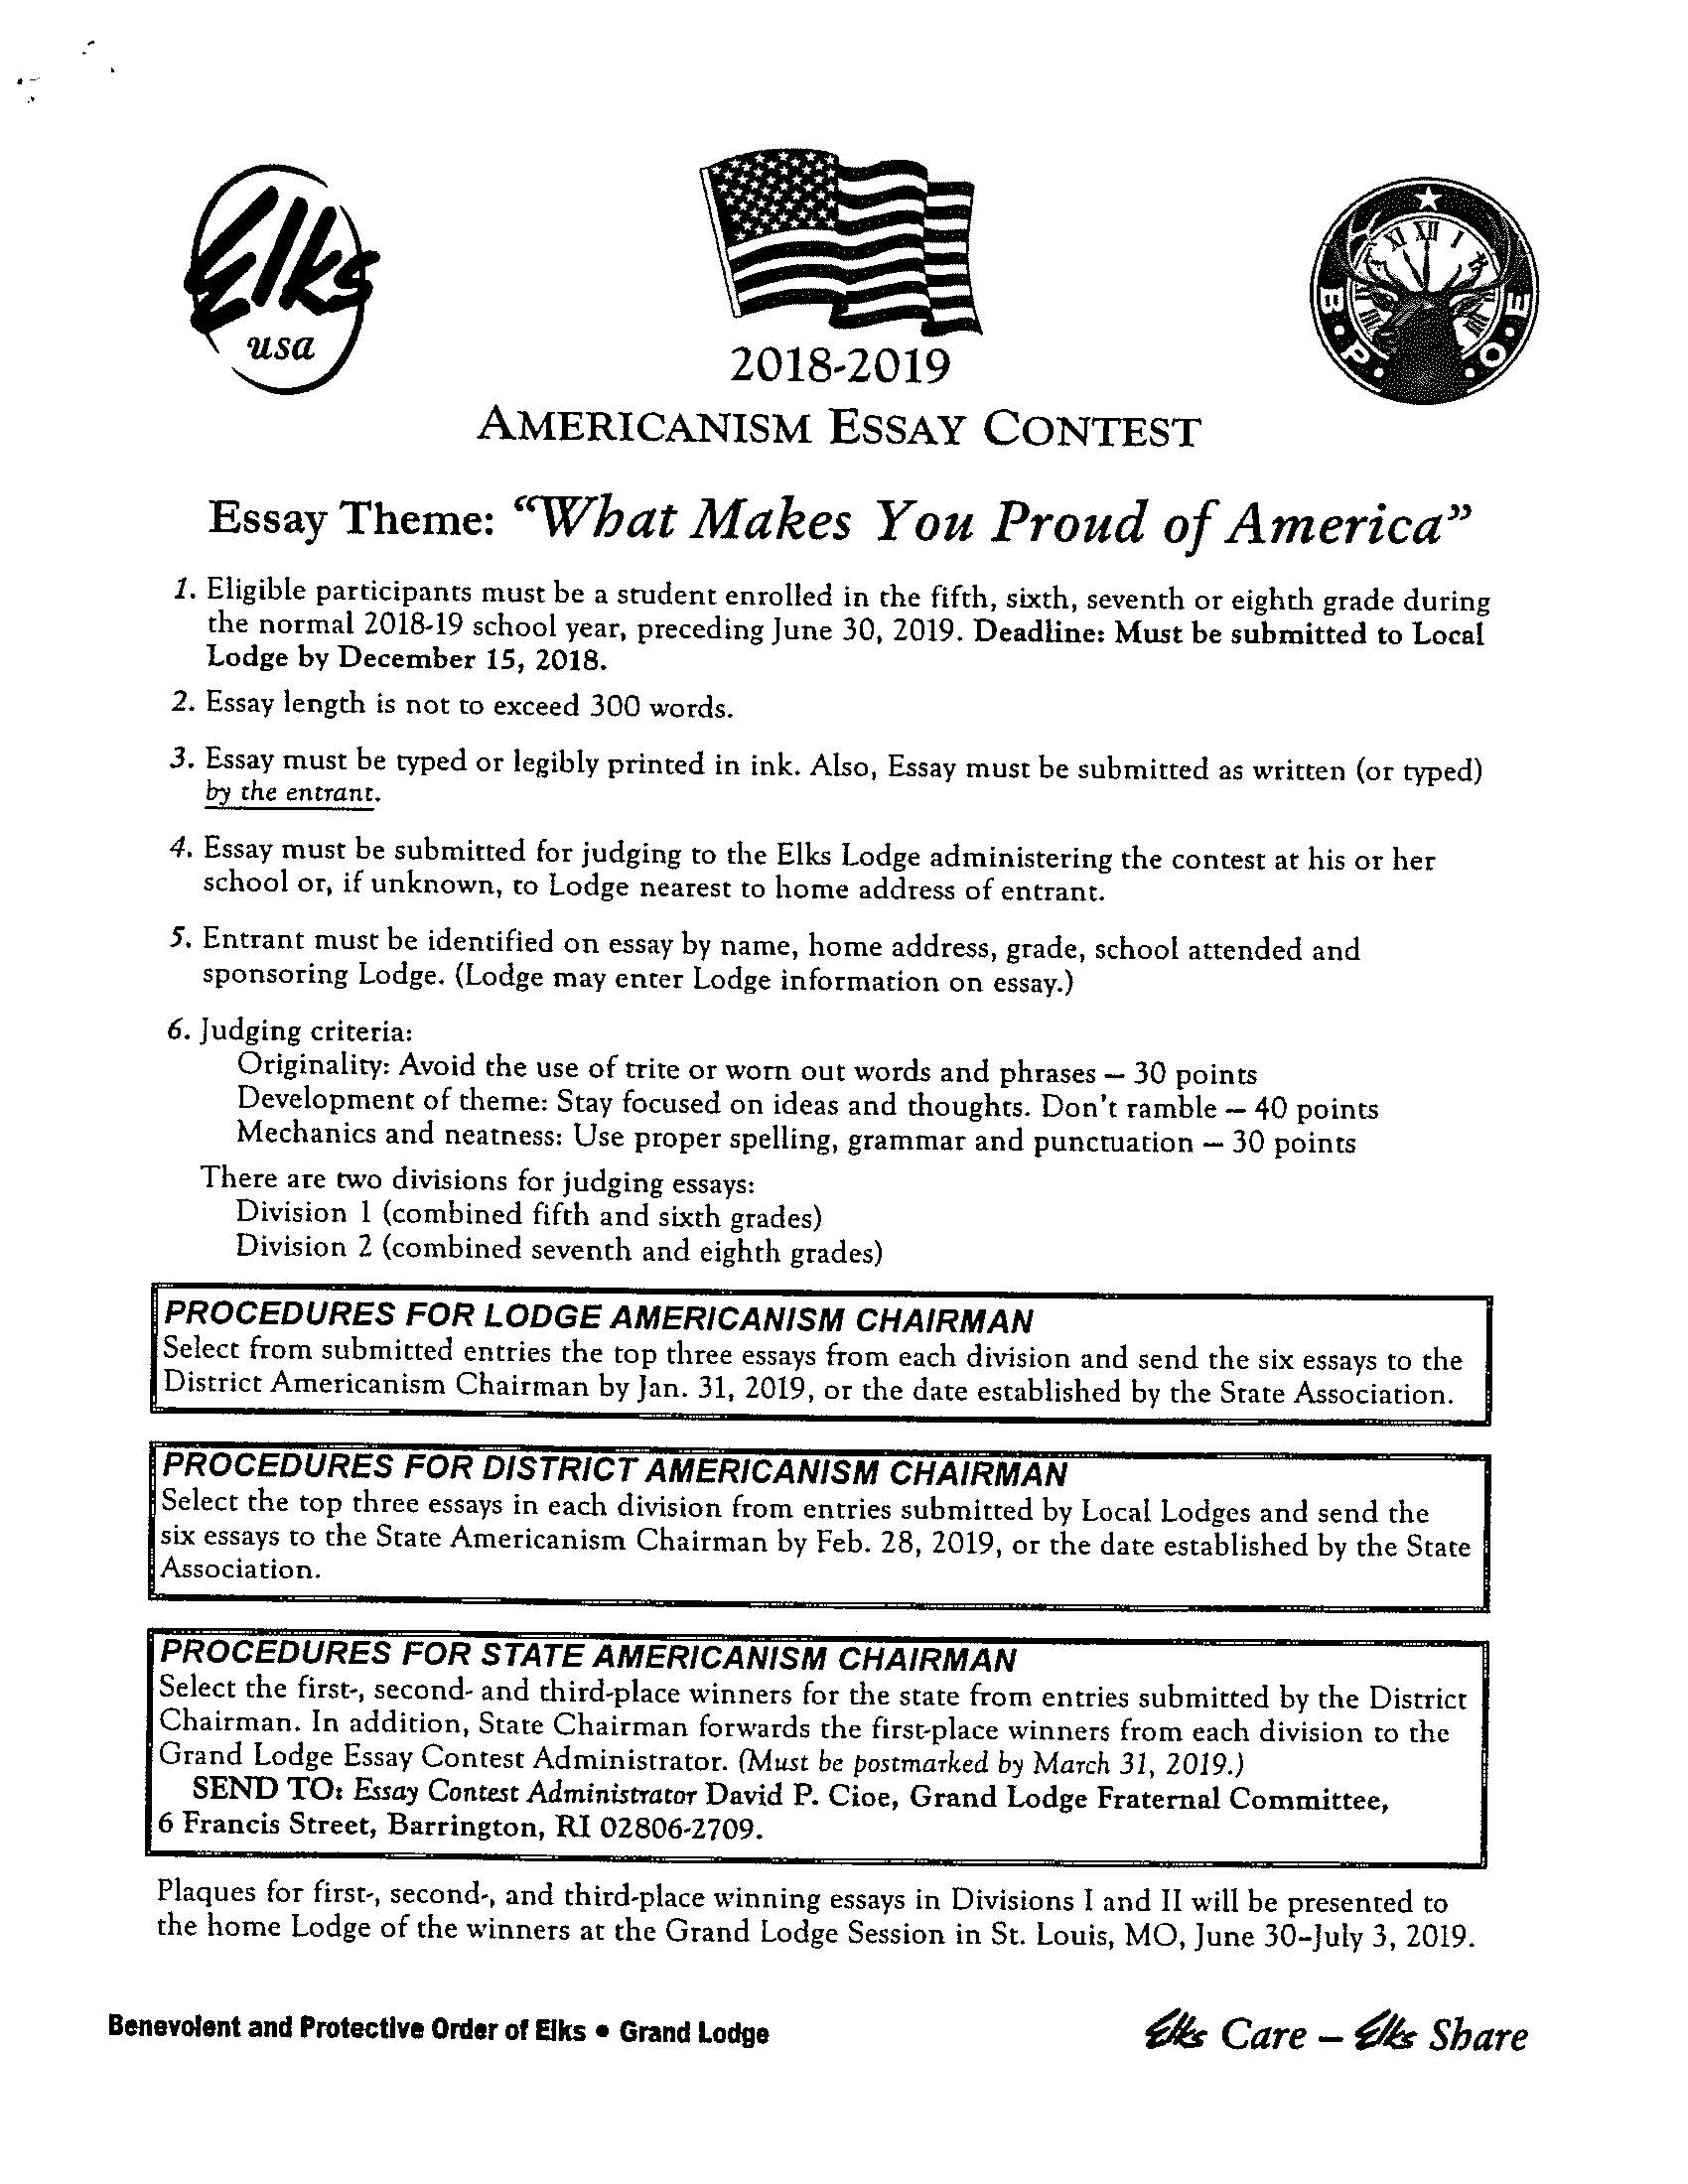 Essay contest info/cover sheet. PDF provided.